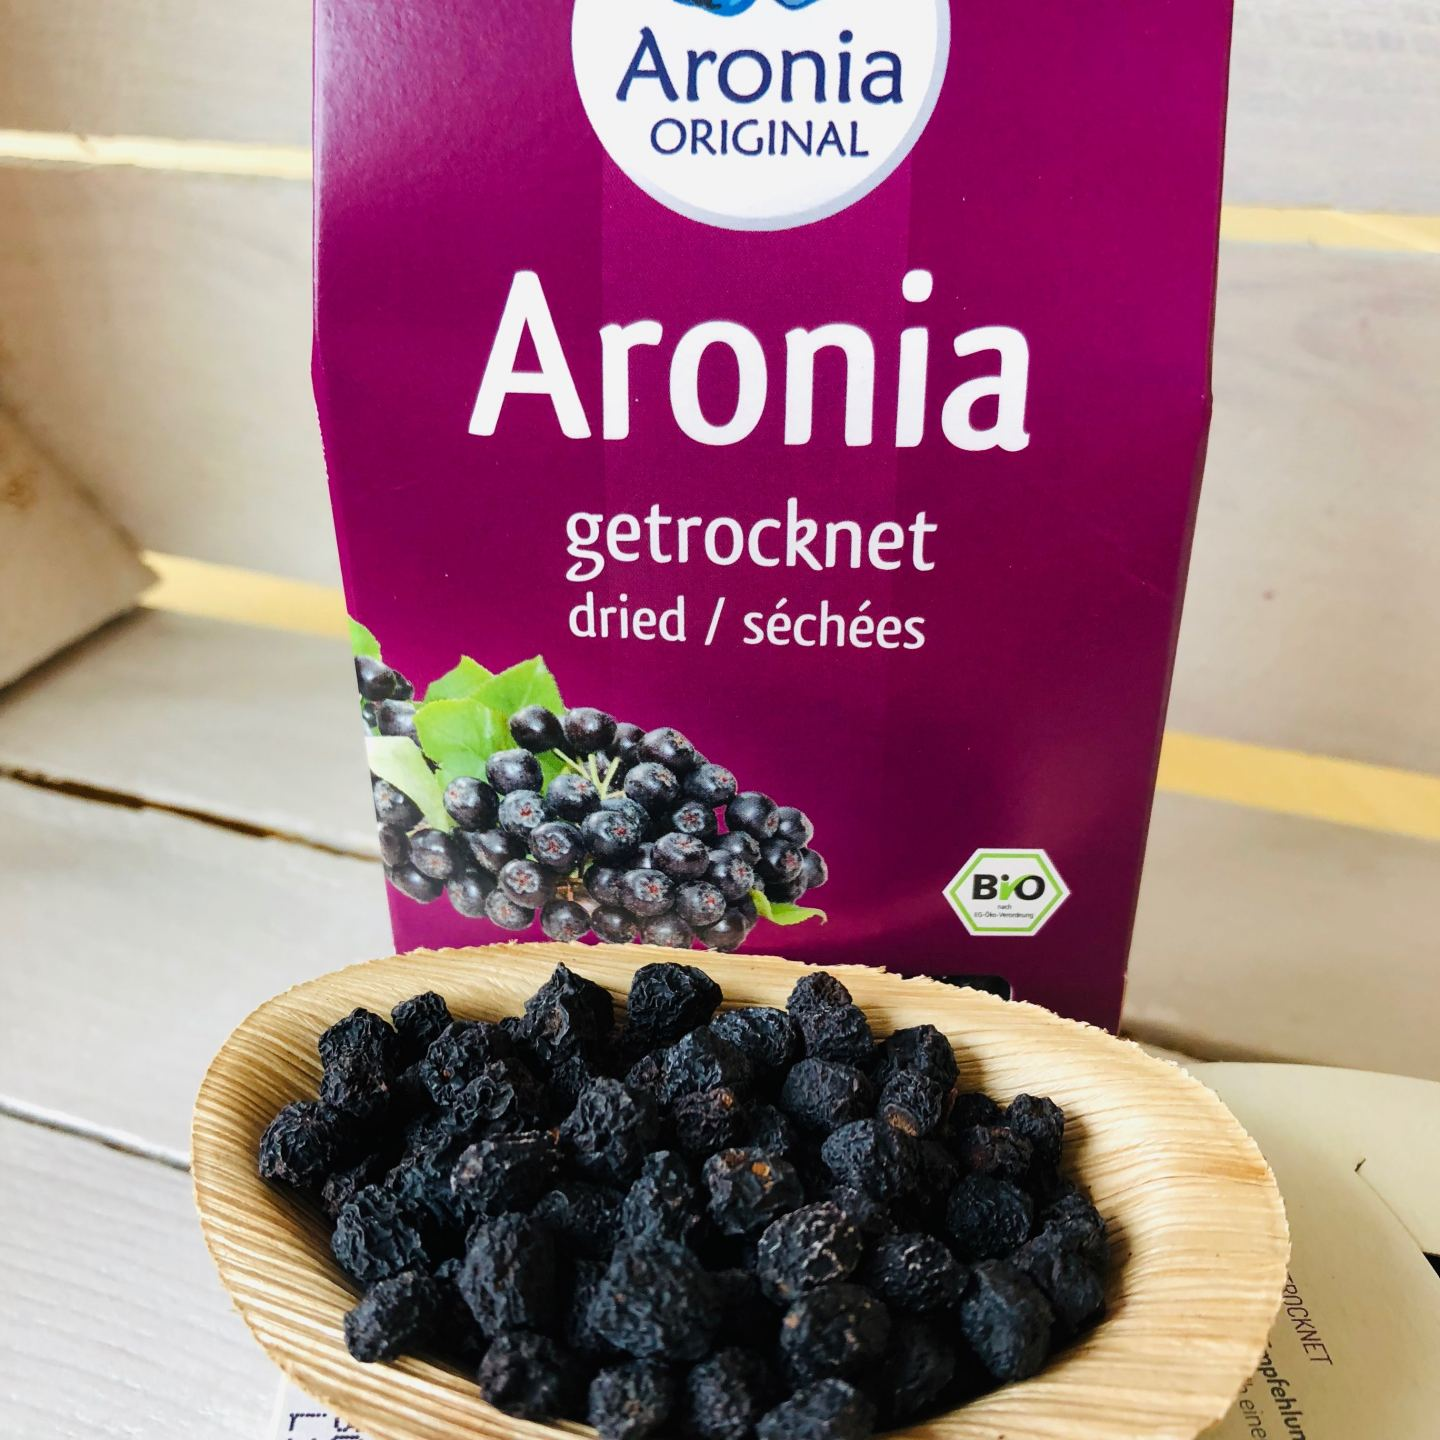 Dried aronia berries Aronia ORIGINAL